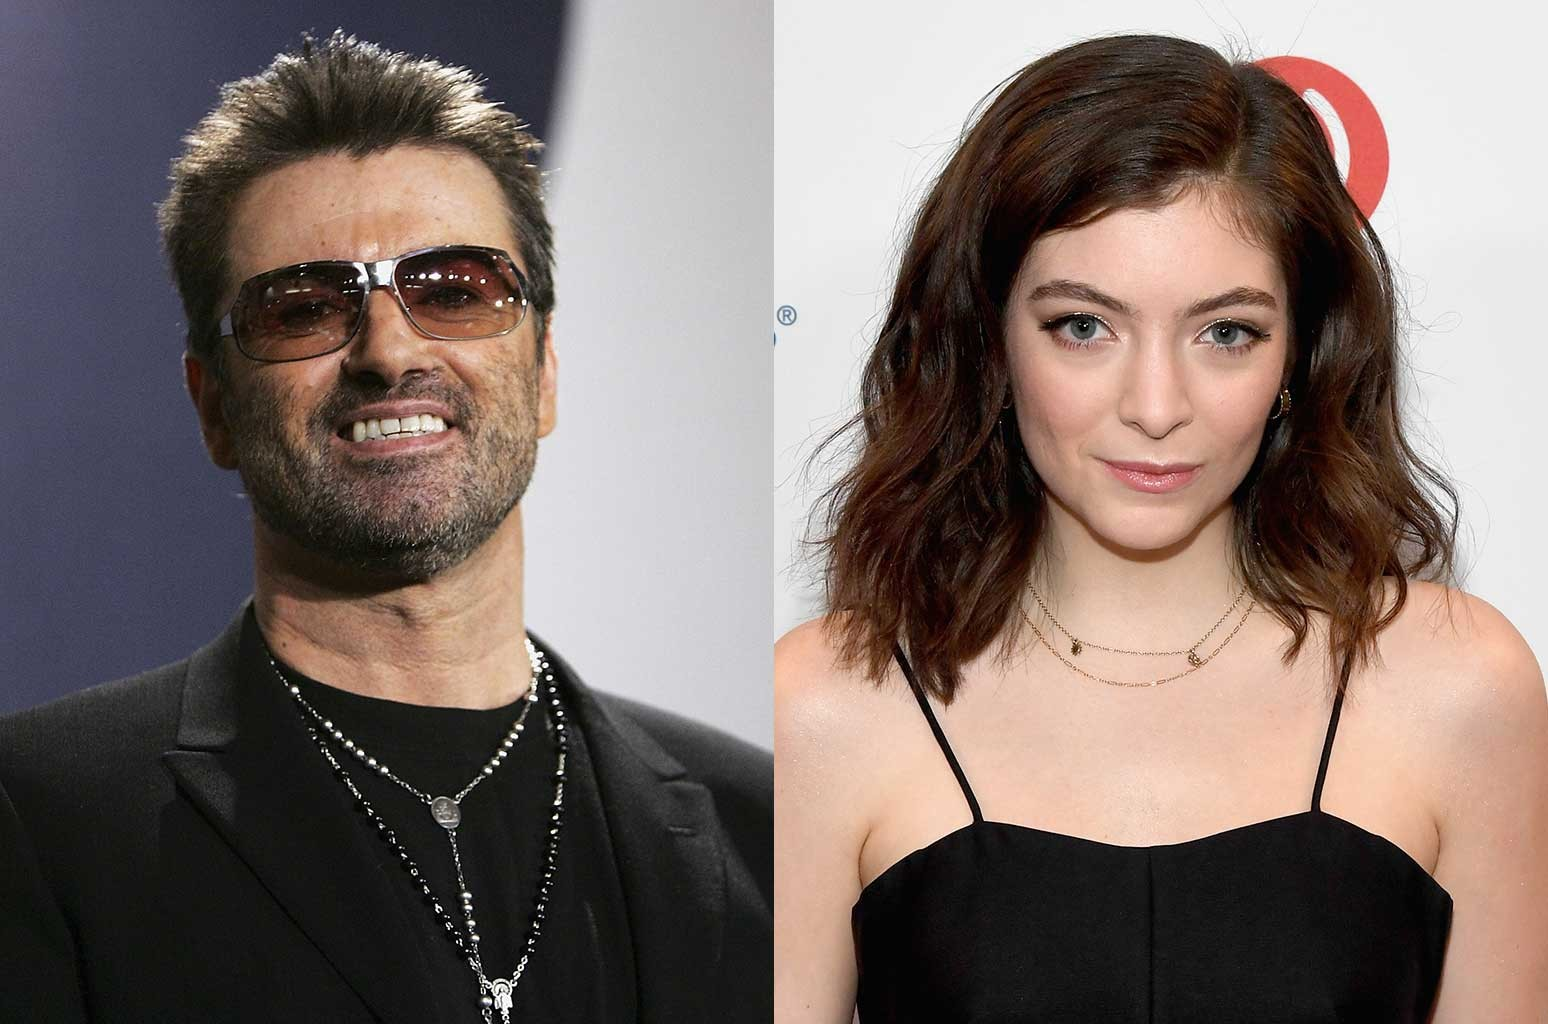 George Michael and Lorde